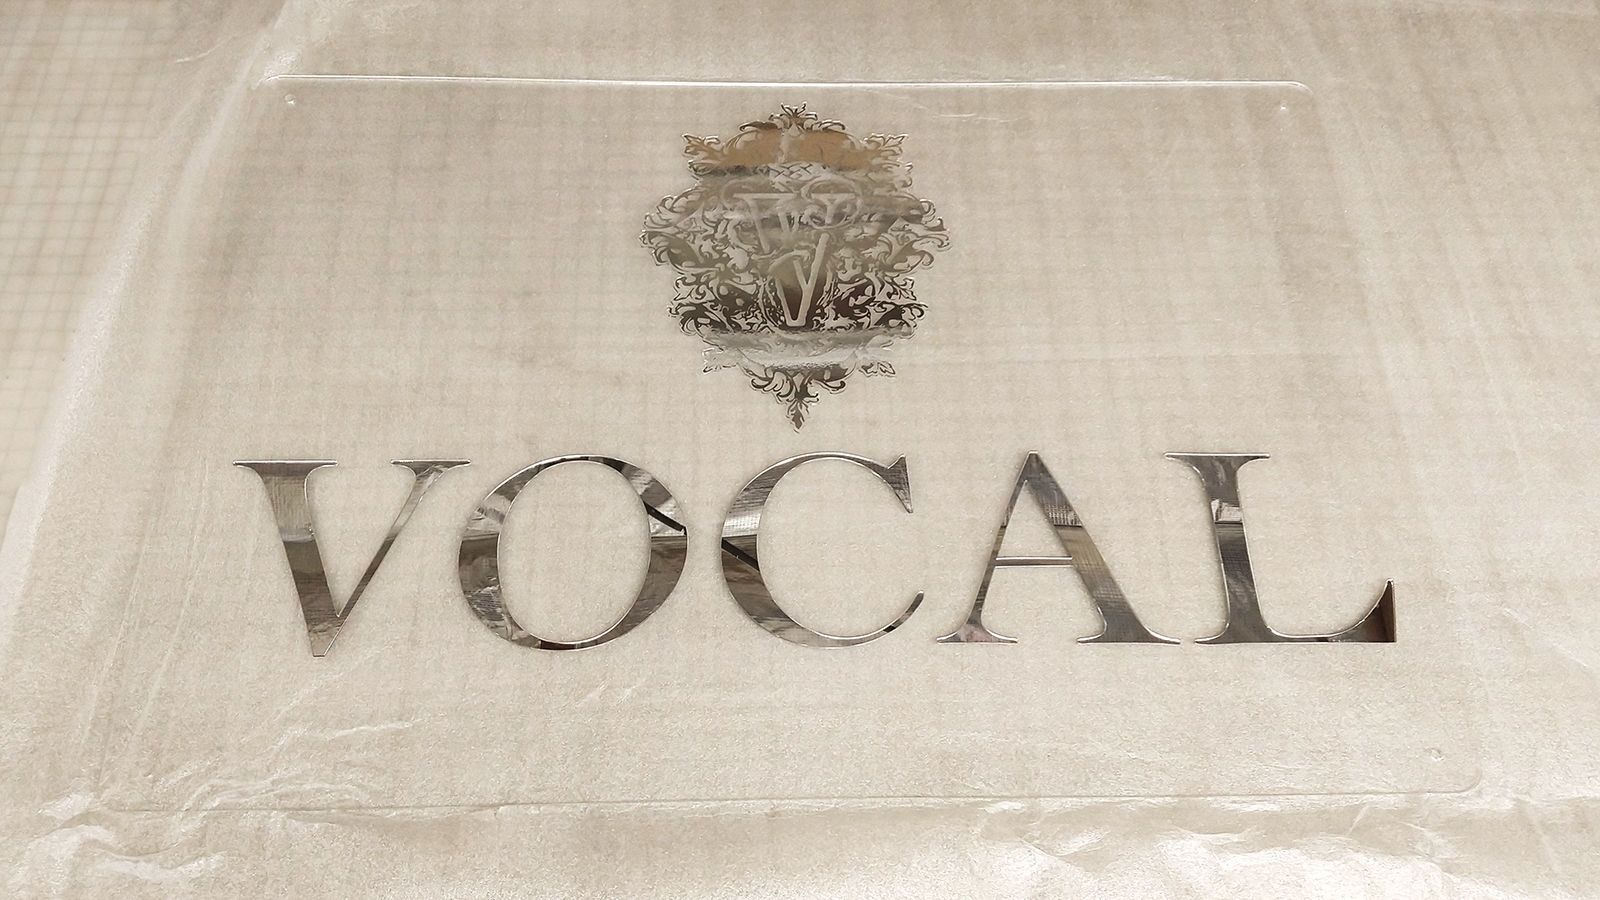 Vocal acrylic sign